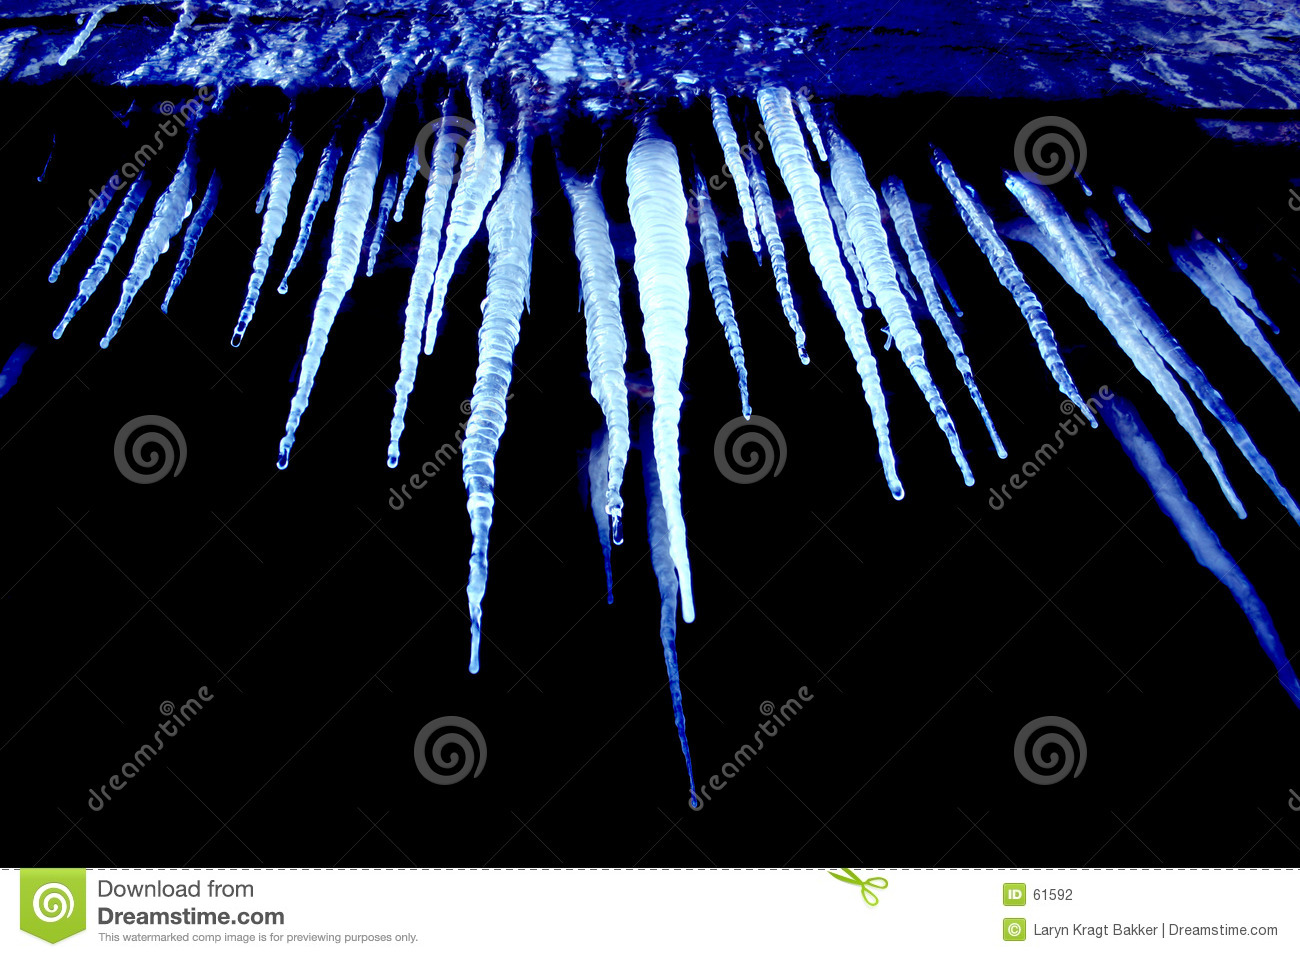 Cold blue icicles